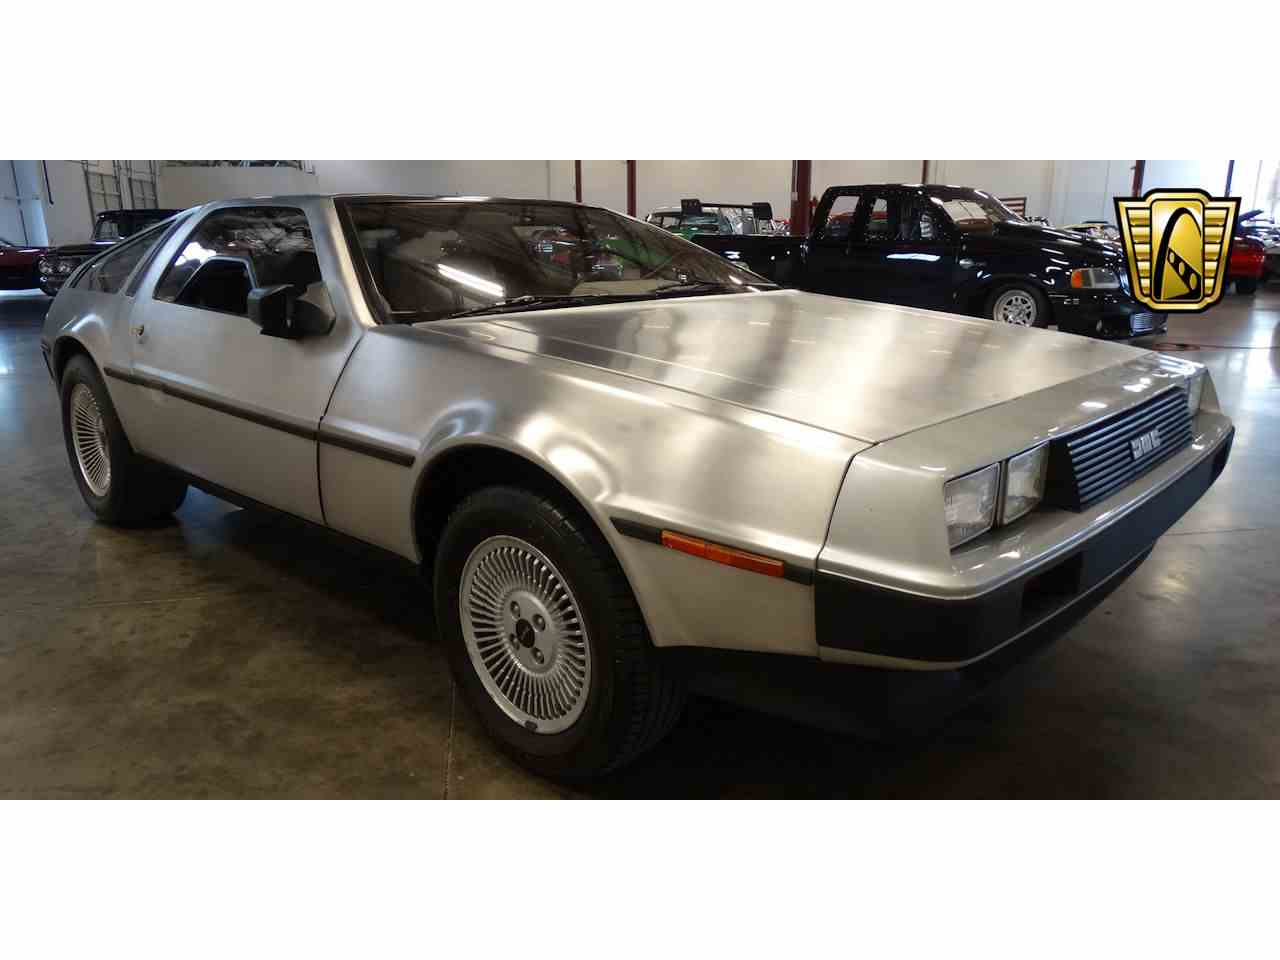 Large Picture of '81 DMC-12 located in Tennessee - $29,995.00 - M2L4